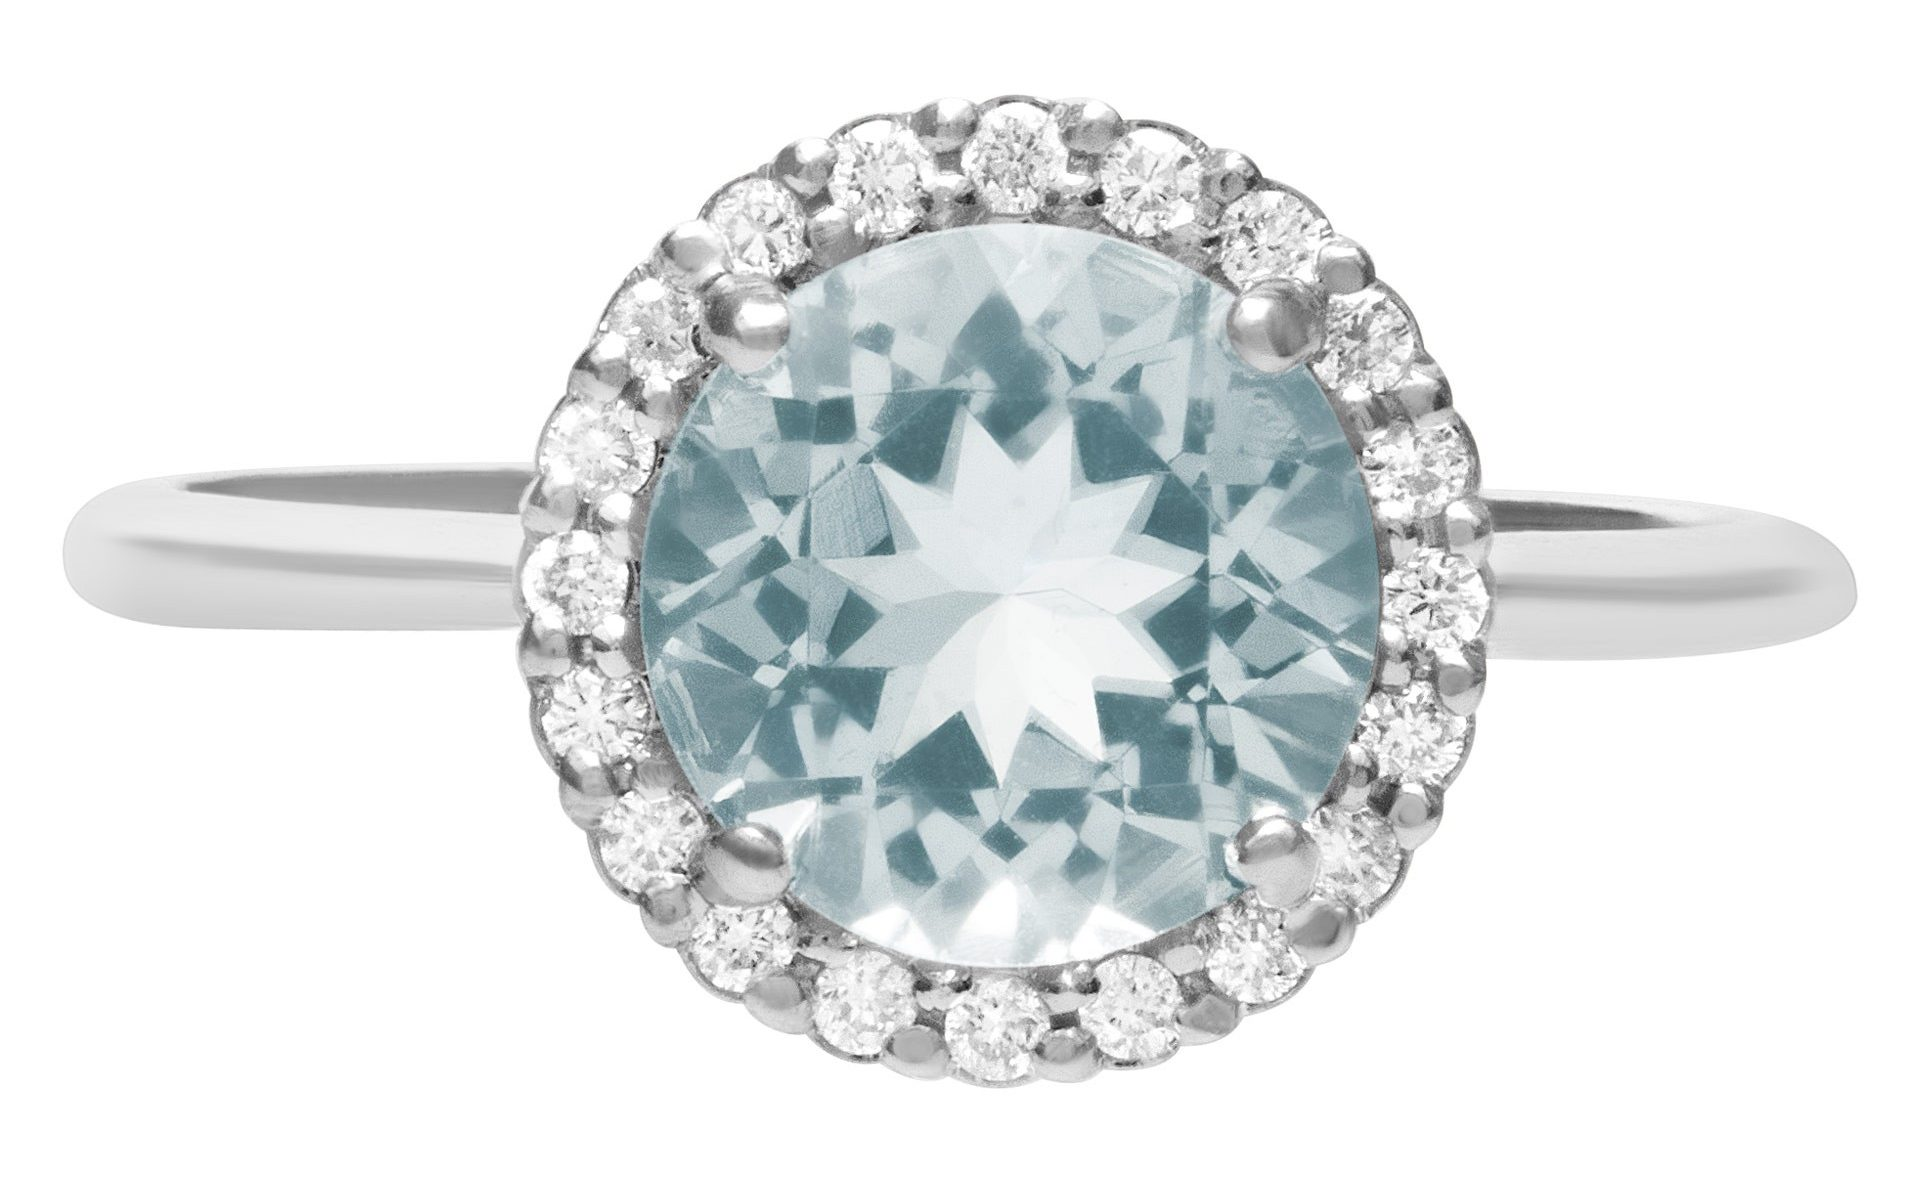 Aquamarine can range from light green to vibrant blue